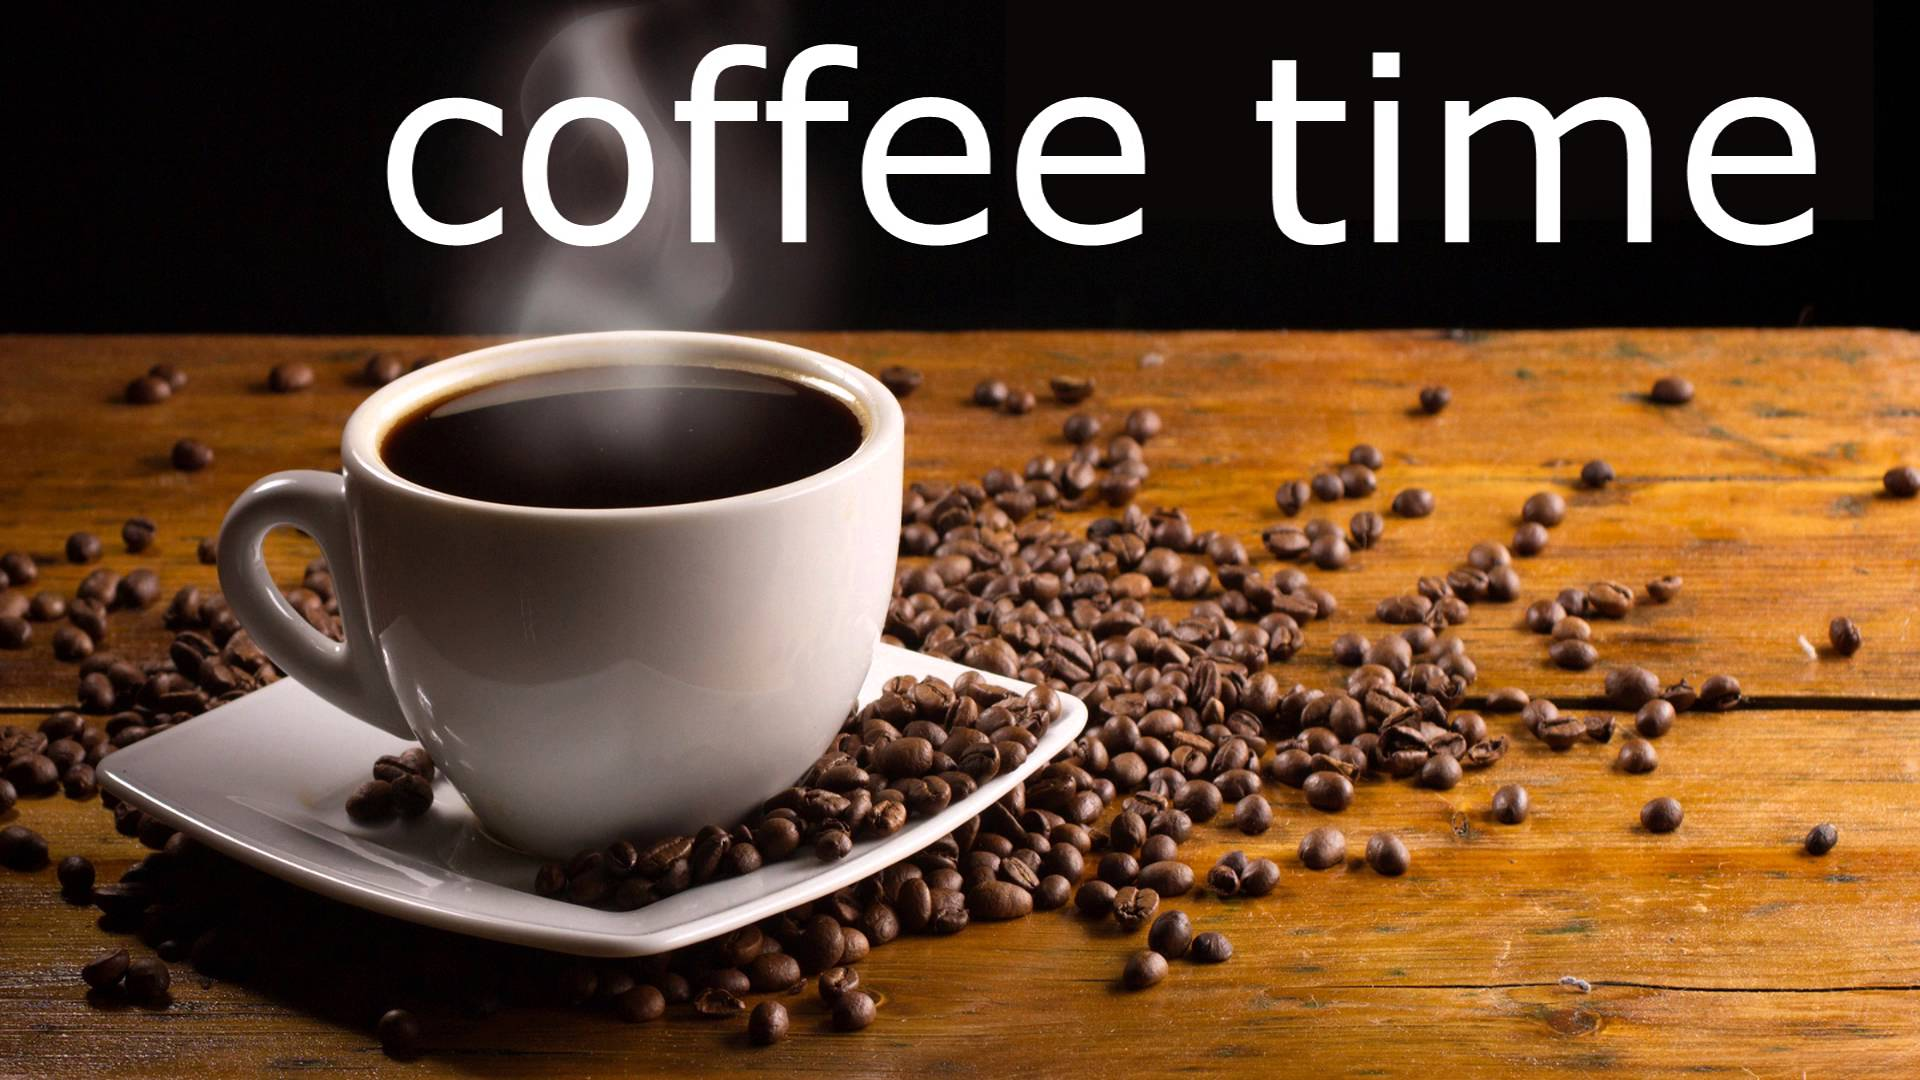 coffee time Coffee times opened in lexington, ky in 1983 before the american coffee shop experience had fully developed it was an exciting time that afforded us the opportunity.